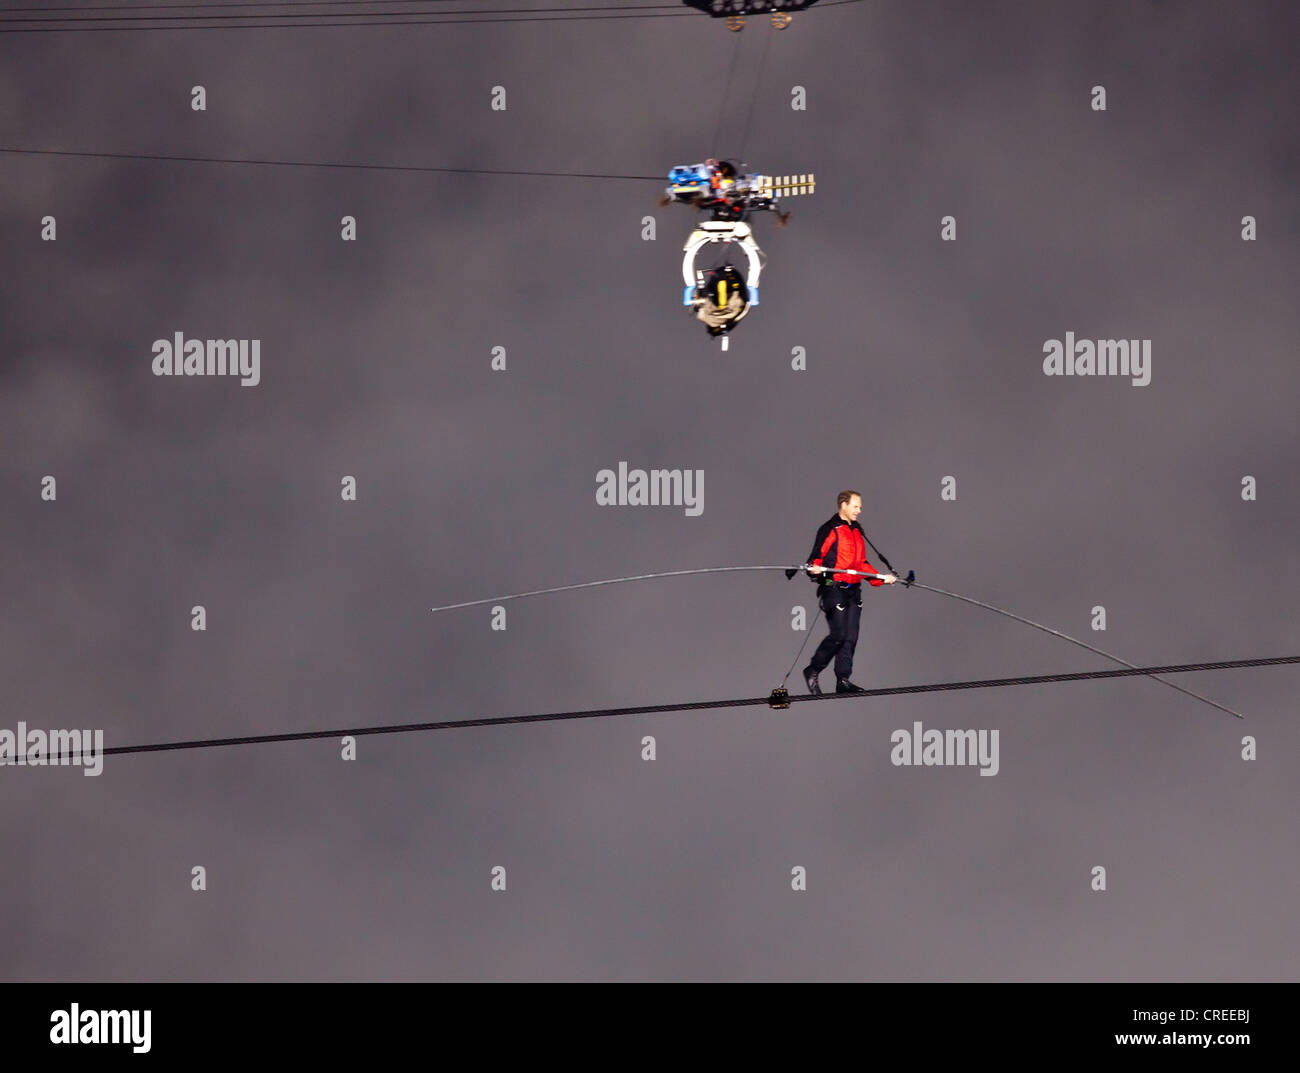 Nik Wallendar on his high wire walk over Niagara Falls for Goat Island Niagara,New York Sate to Niagara Falls in - Stock Image